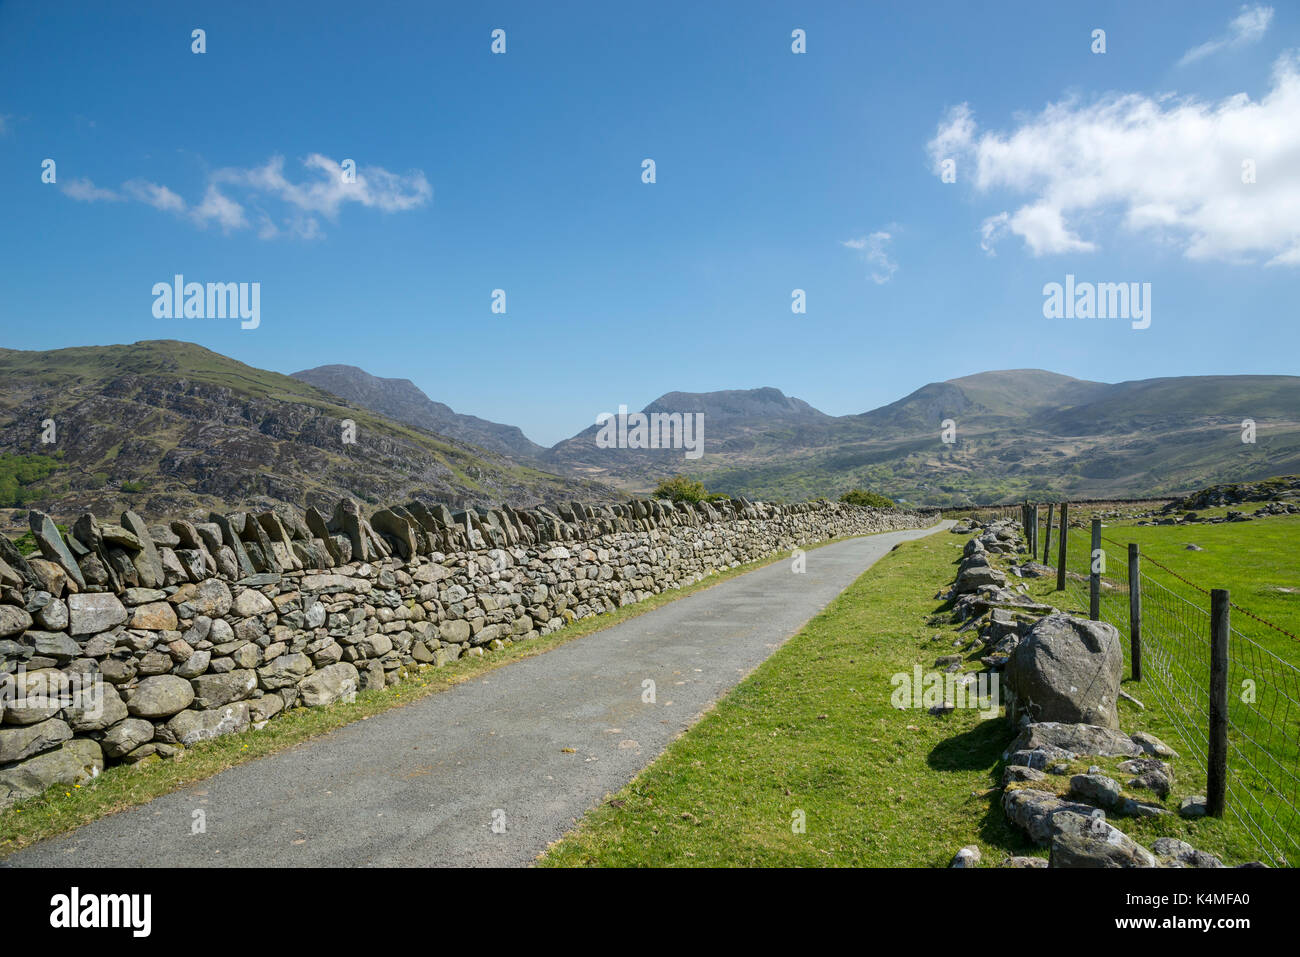 A bright spring day in the remote landscape of Cwm Nantcol near Llanbedr in North Wales. Stock Photo